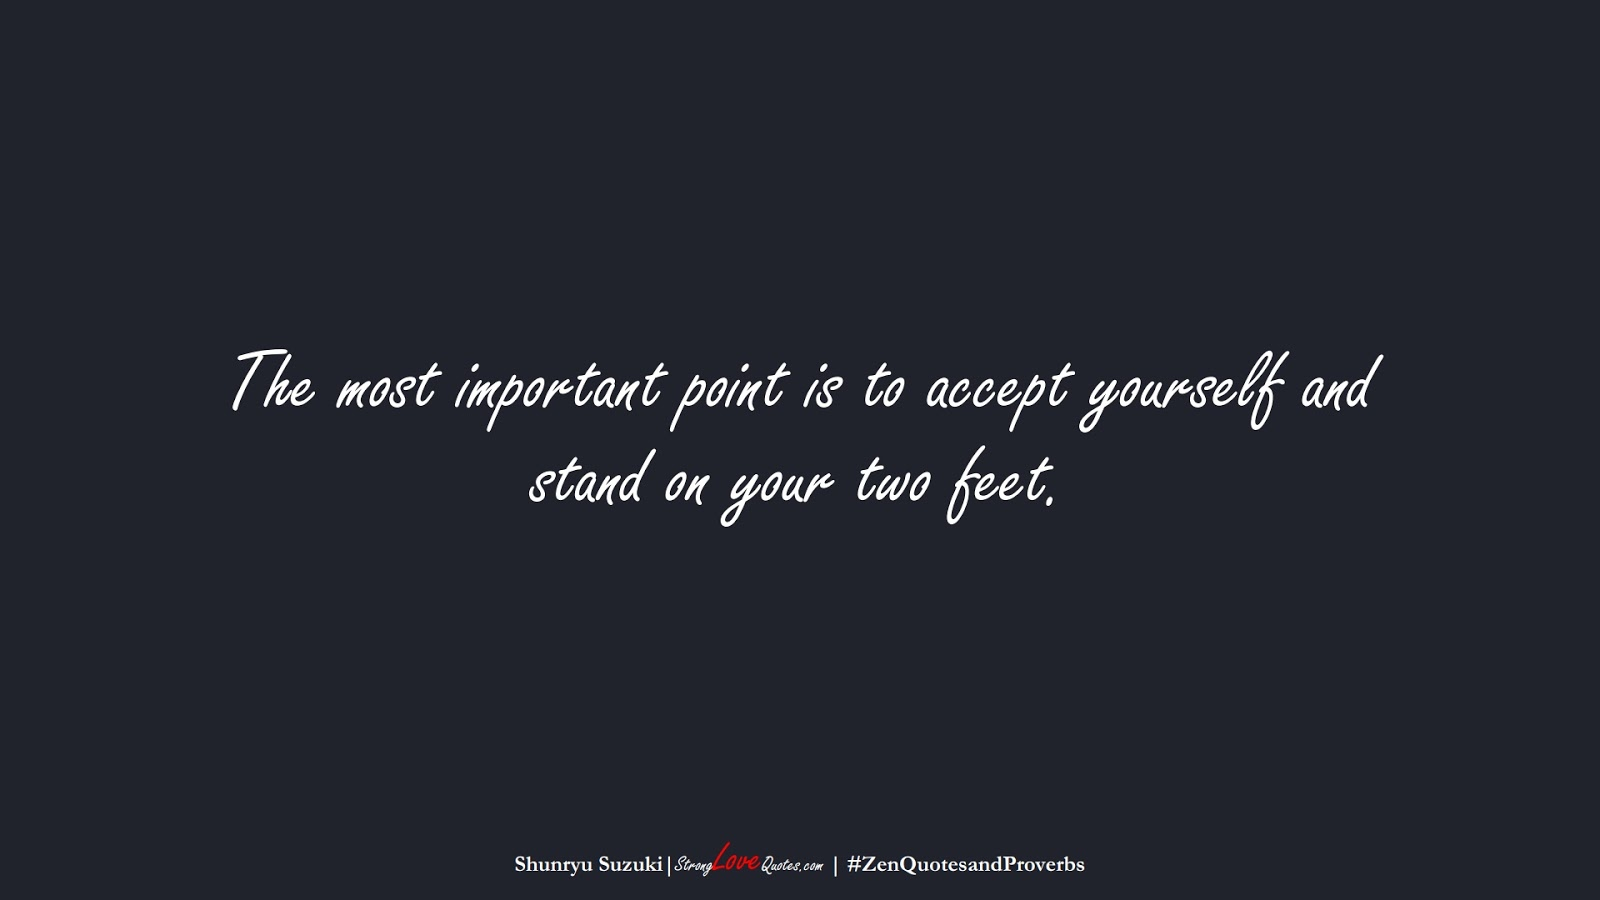 The most important point is to accept yourself and stand on your two feet. (Shunryu Suzuki);  #ZenQuotesandProverbs